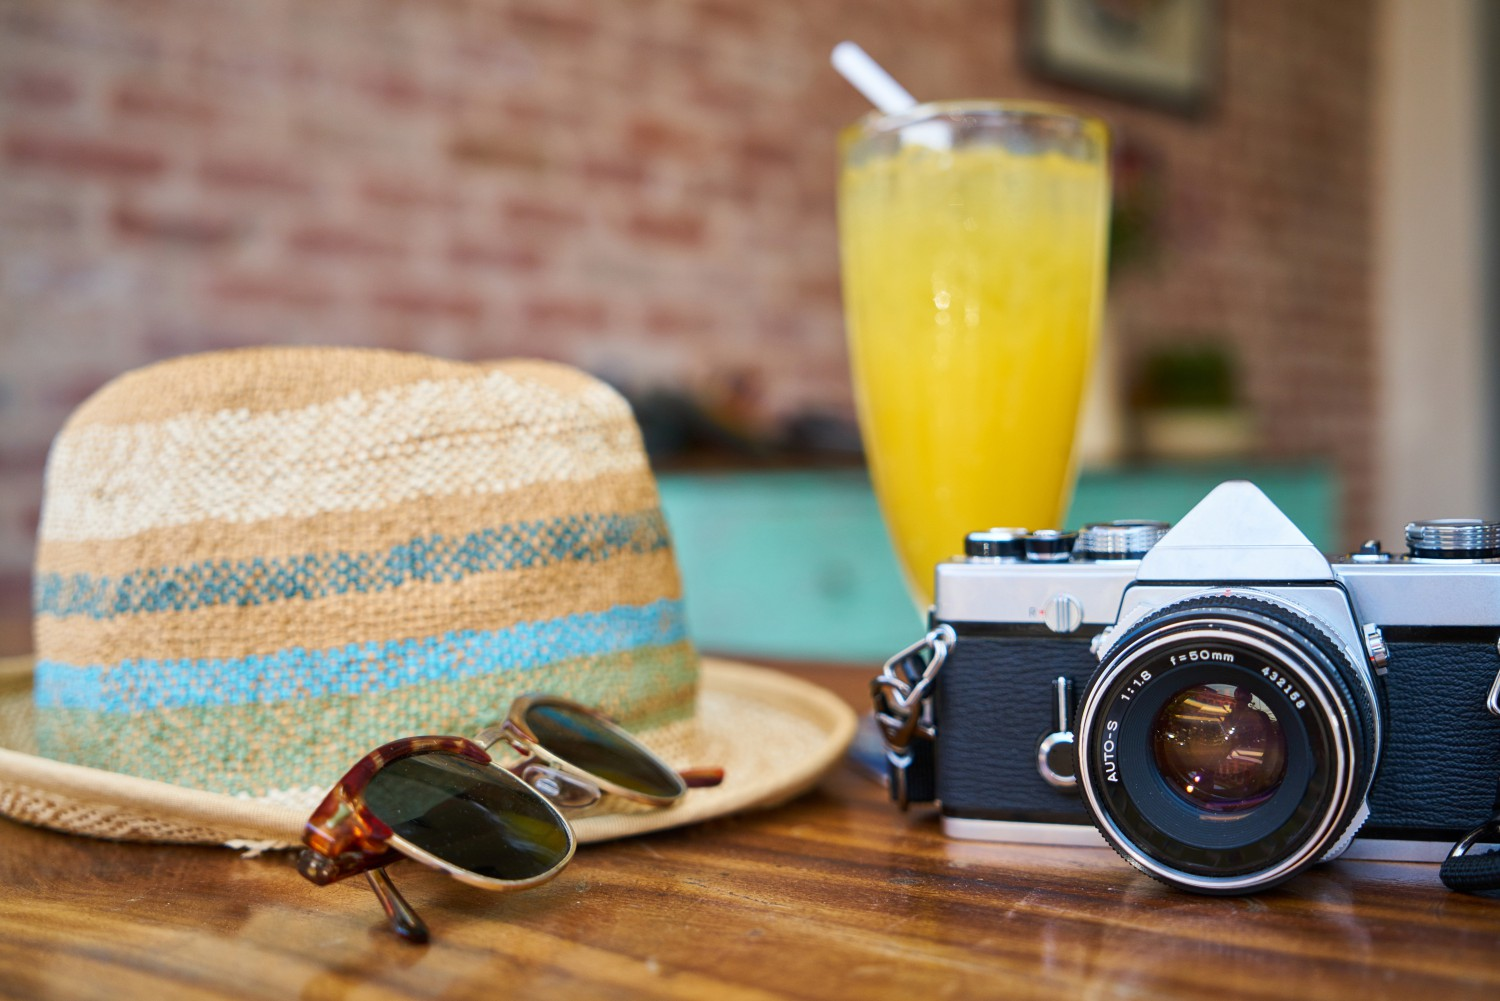 A hat, sunglasses, a glass of juice, and a camera on a table